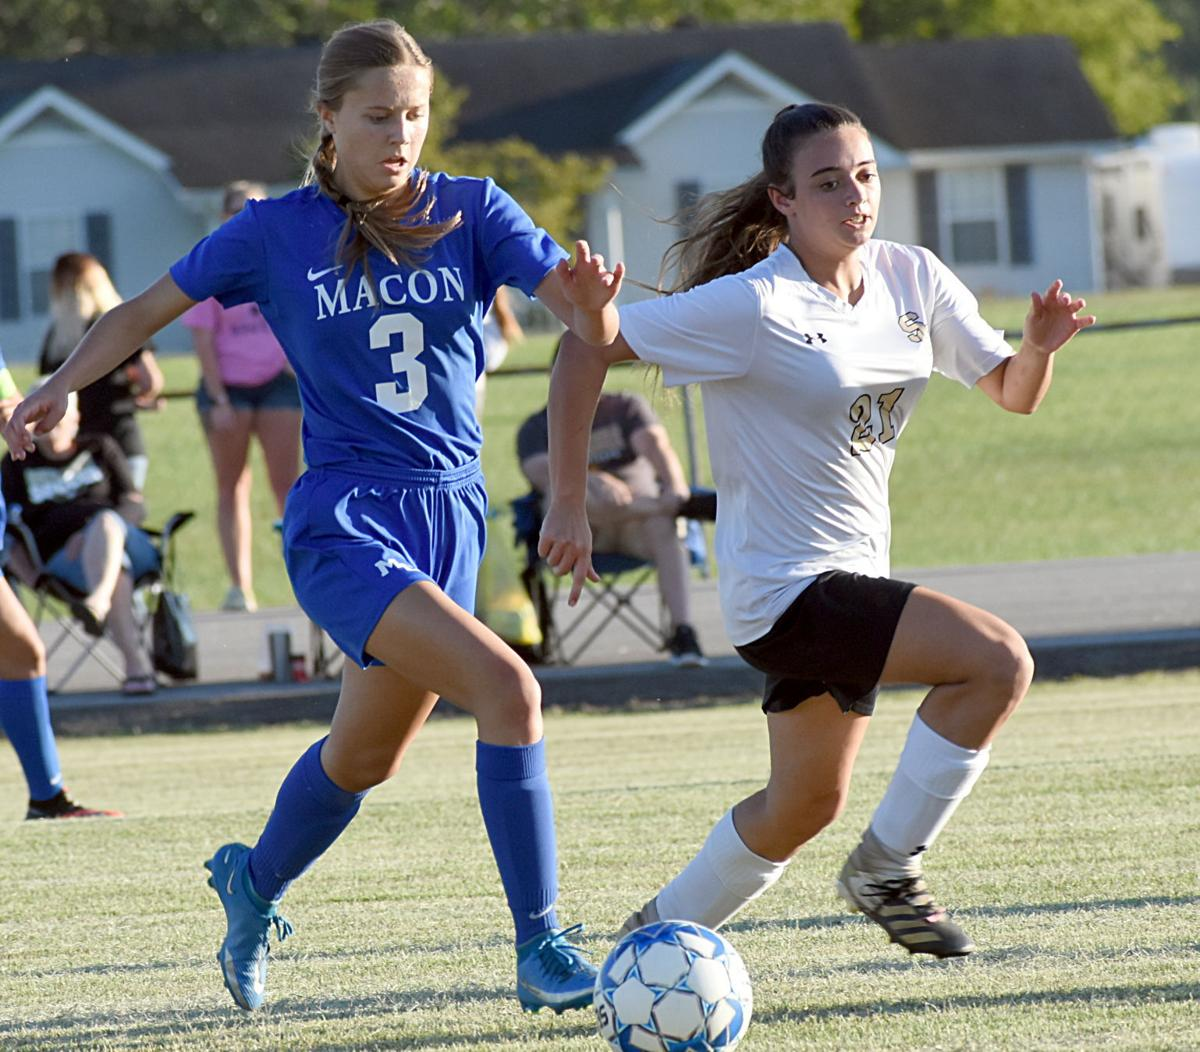 MCHS-SMITH COUNTY GIRLS SOCCER PHOTO 2